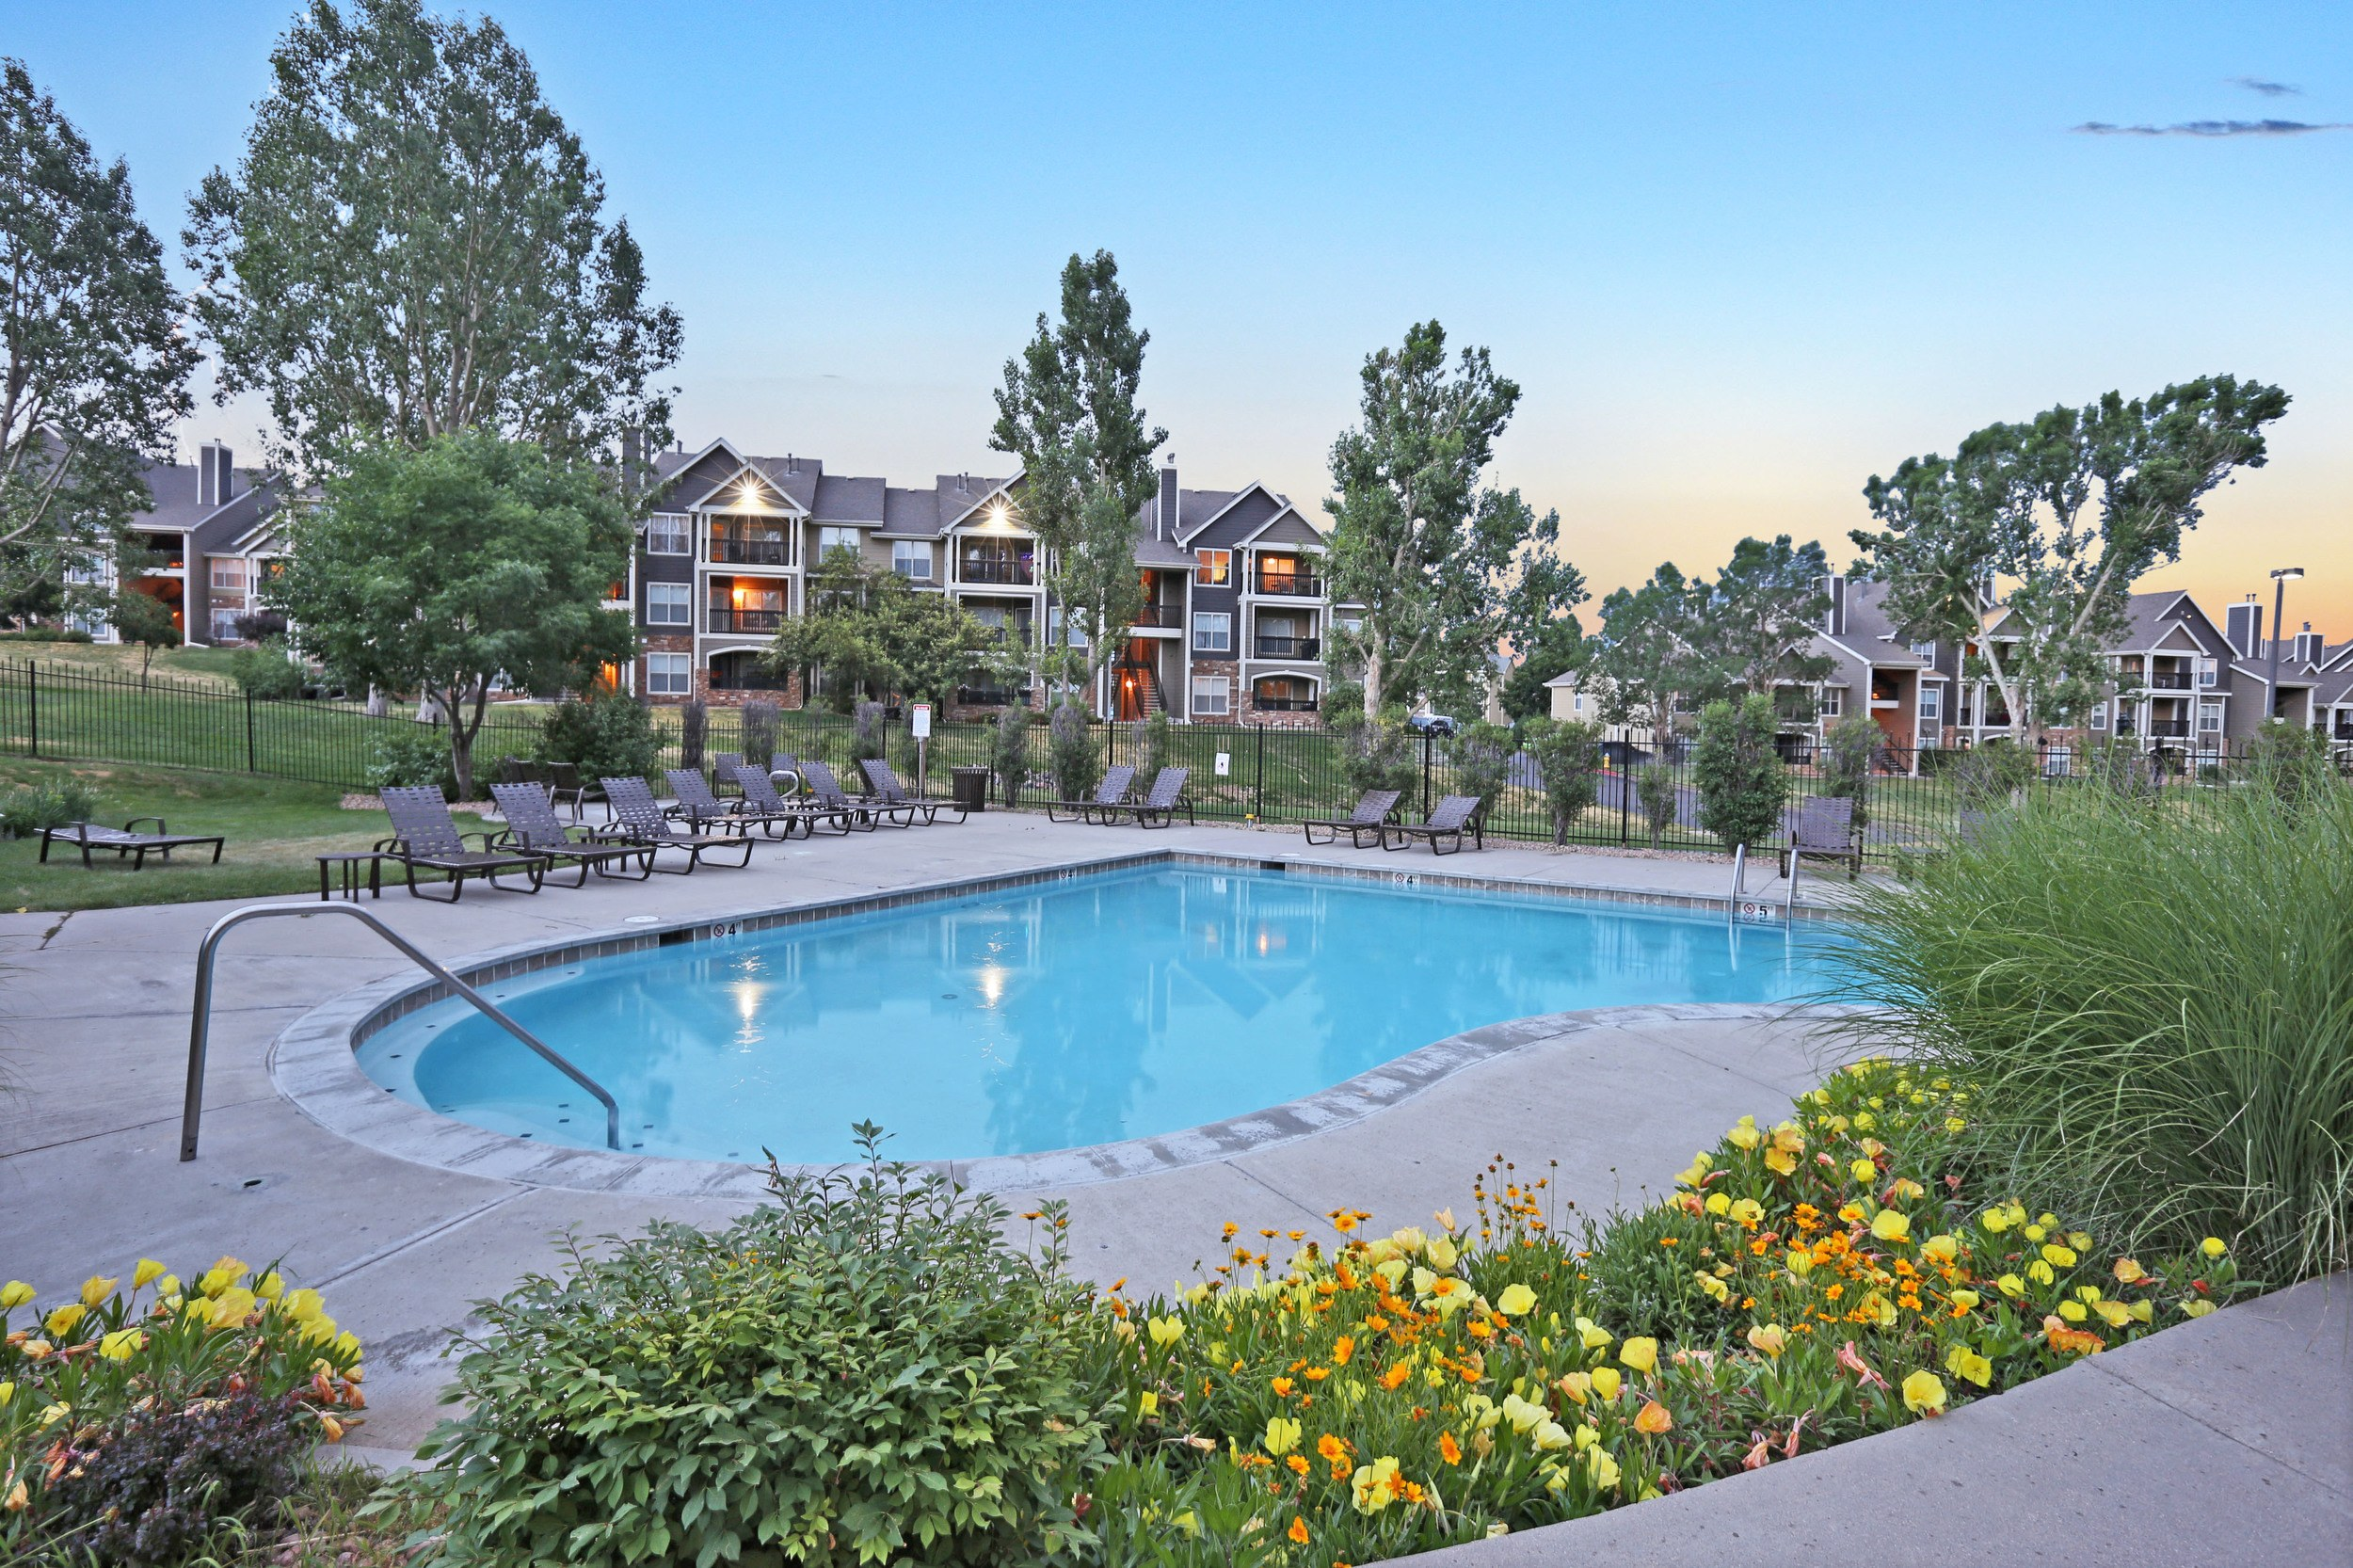 Colorado apartments Remodeled Swimming Pool